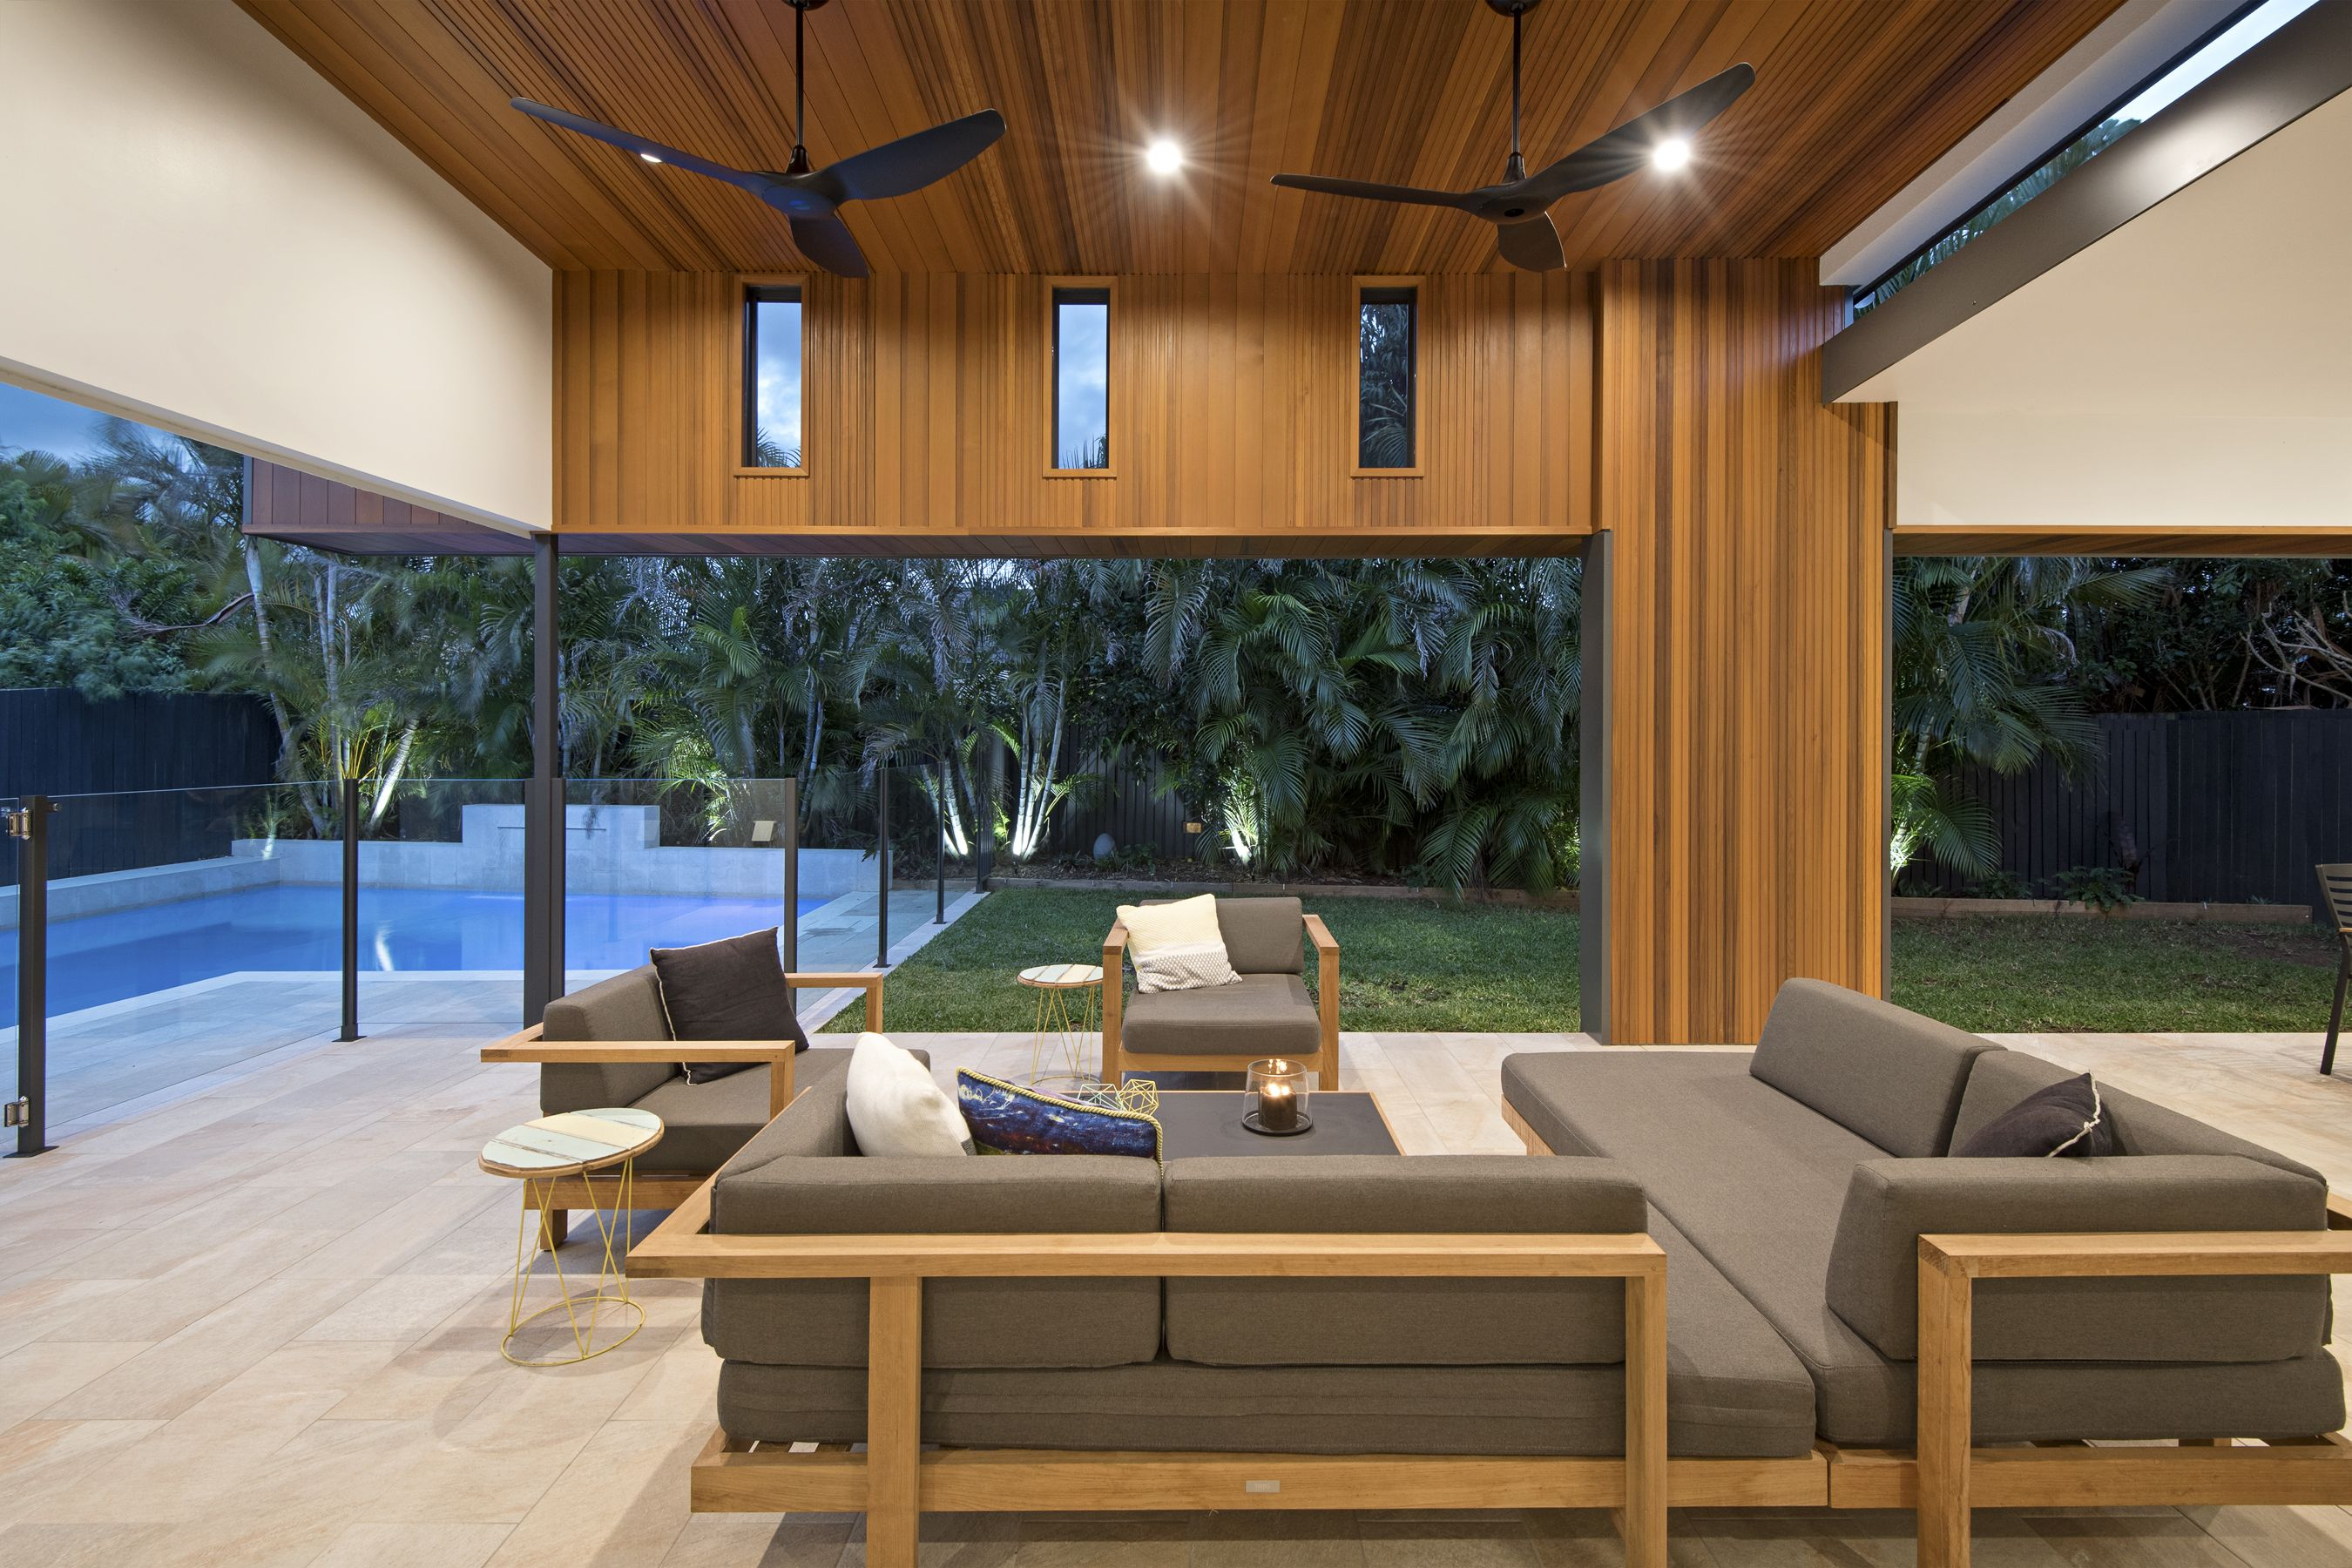 Outdoor Living Modern Outdoor Seating North Lakes Timber Feature Ceiling North Modern Outdoor Seating Outdoor Entertaining Area Pool Entertainment Area